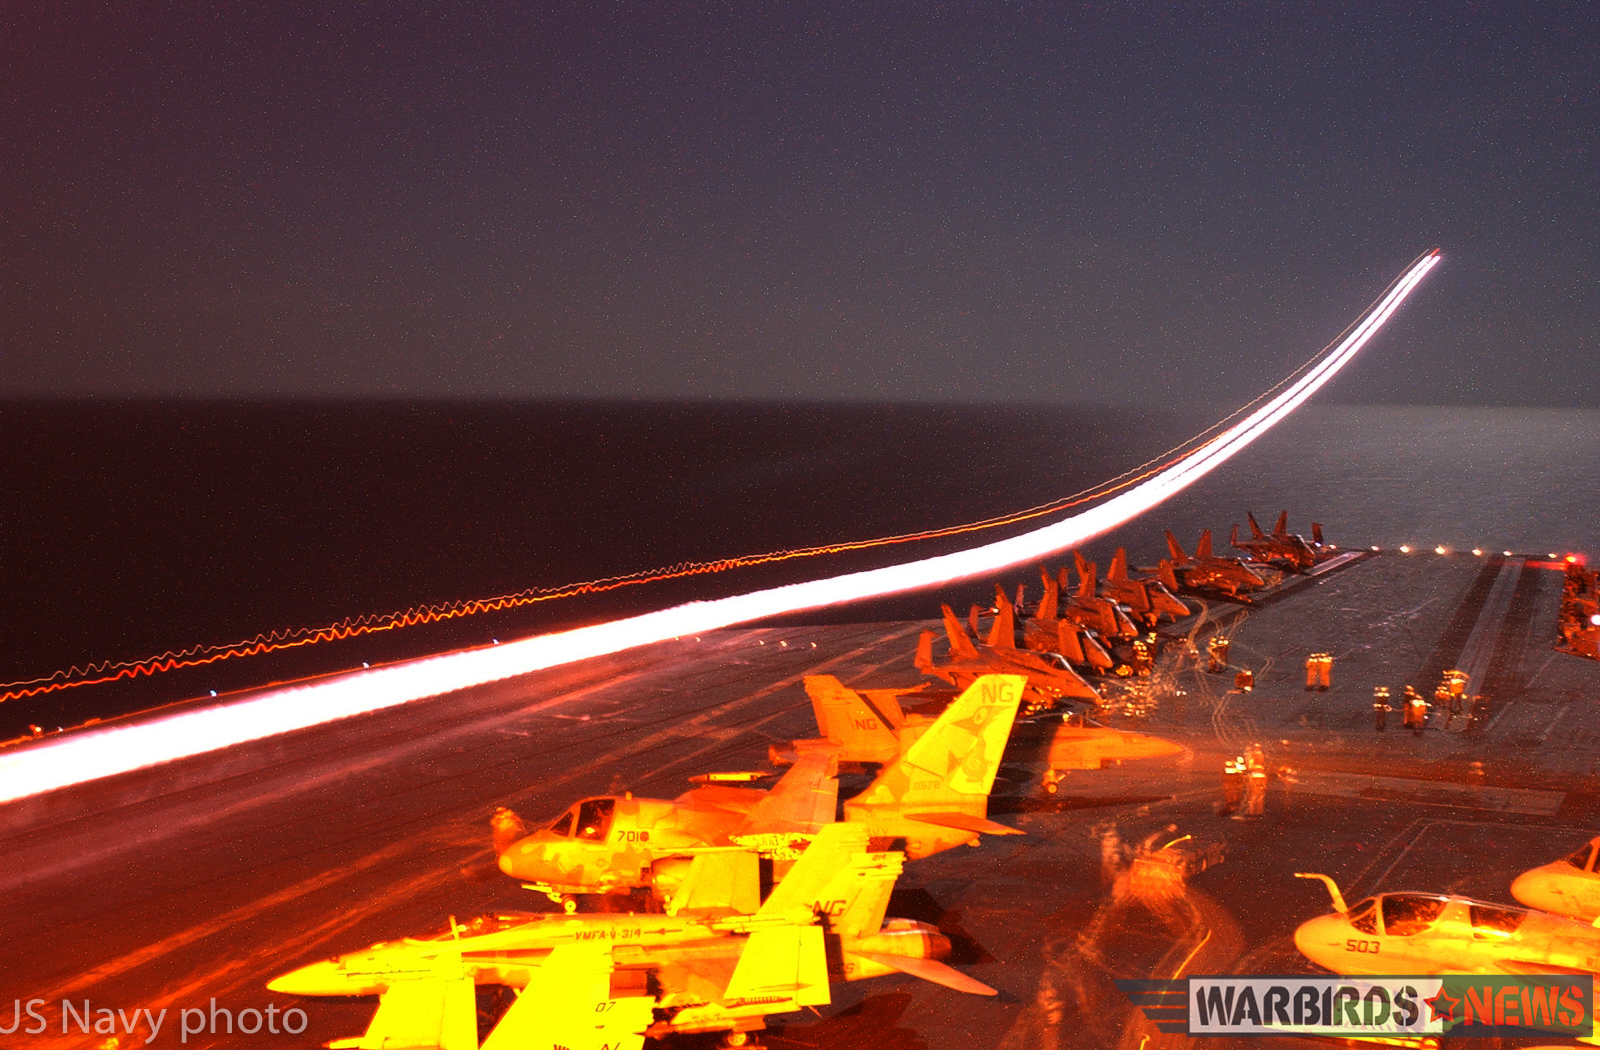 """At sea aboard USS John C. Stennis (CVN 74) Mar. 1, 2002 - A timed photographic exposure of an F-14A """"Tomcat"""" launching from the flight deck displays the afterburner trail of the aircraft as it accelerates away from the ship. John C. Stennis and Carrier Air Wing Nine (CVW-9) are conducting combat missions in support of Operation Enduring Freedom. U.S. Navy photo by Photographer's Mate Airman Michael Arteaga. (RELEASED)"""